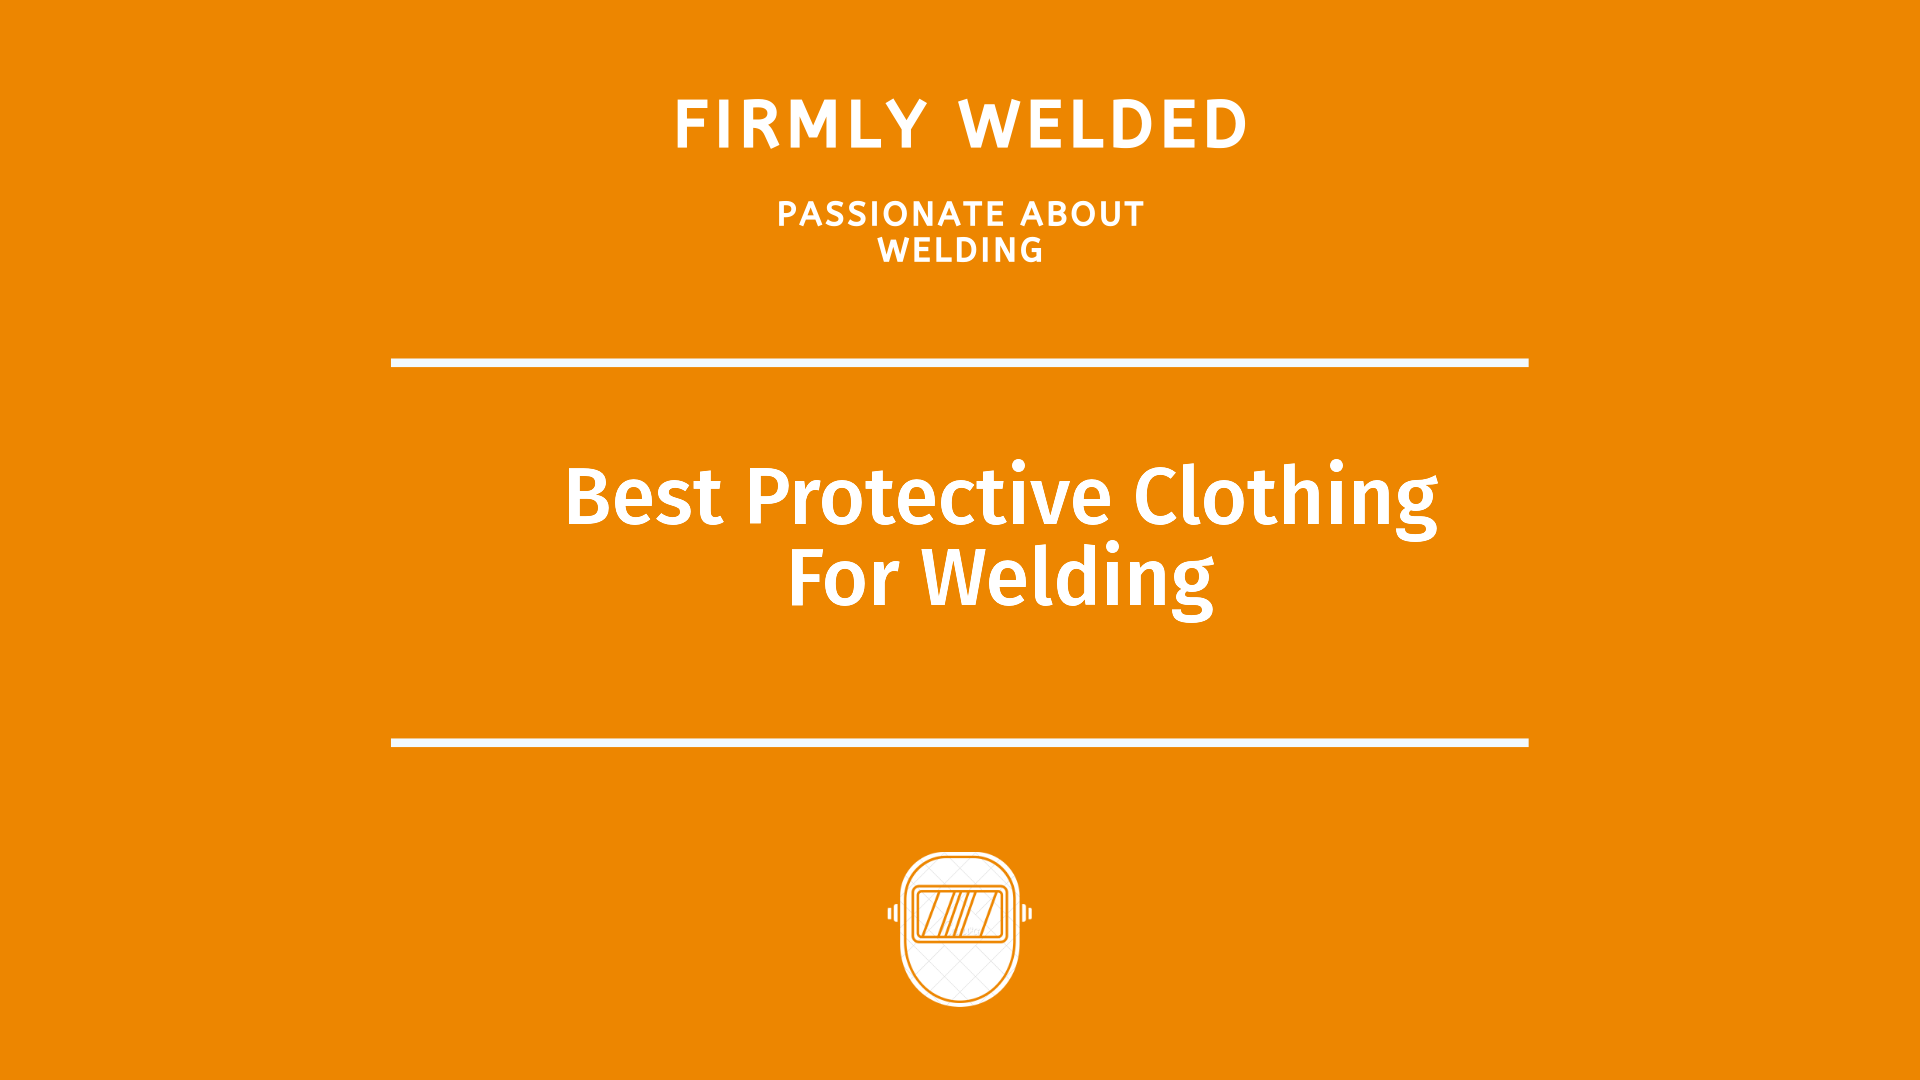 Best Protective Clothing For Welding